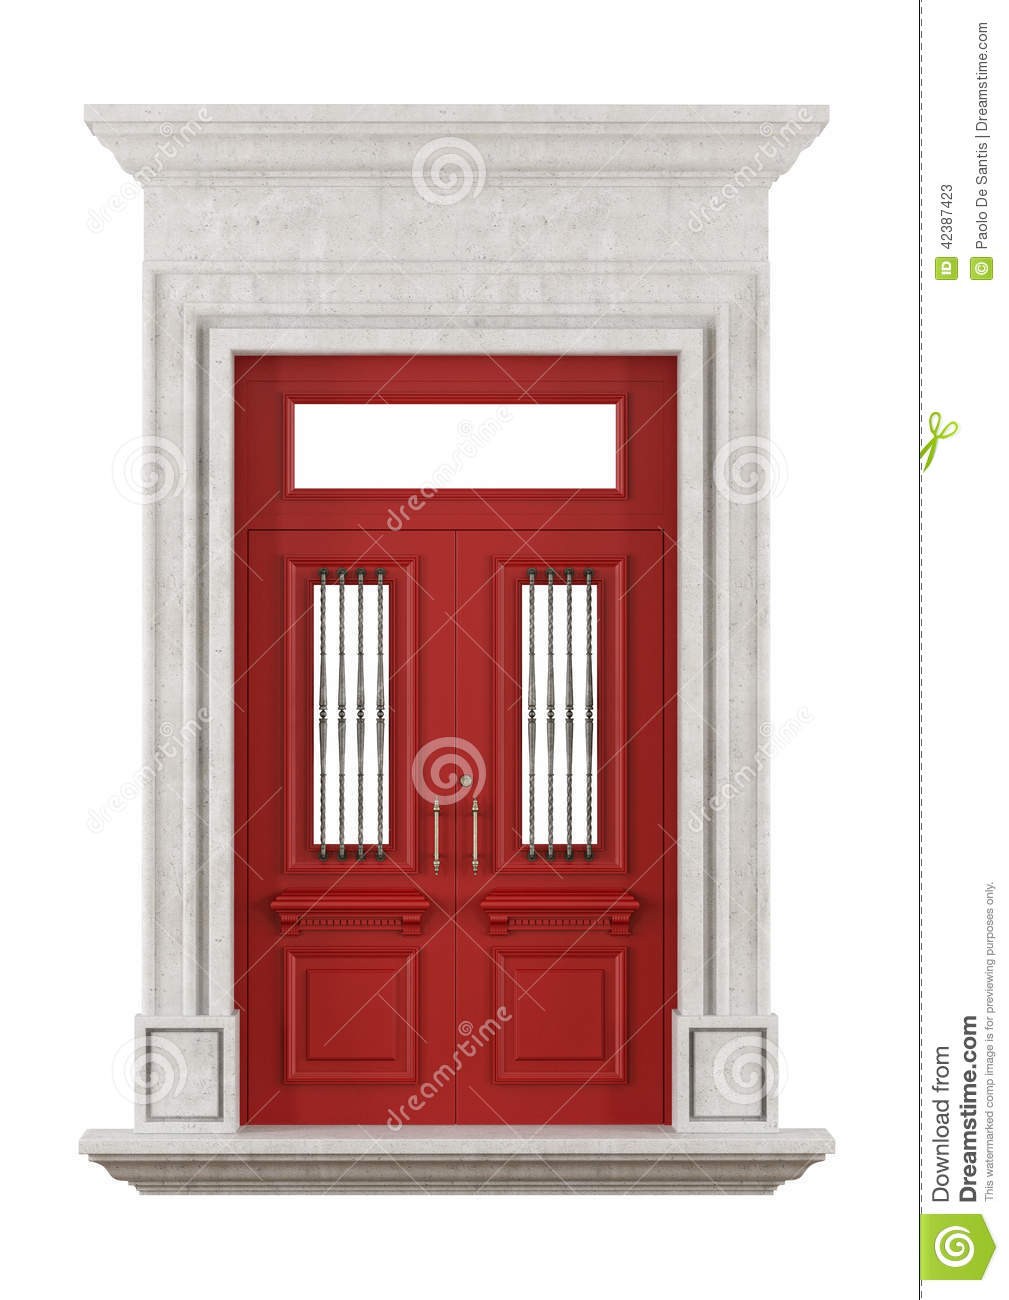 Stone Portal With Red Front Door Stock Illustration ...